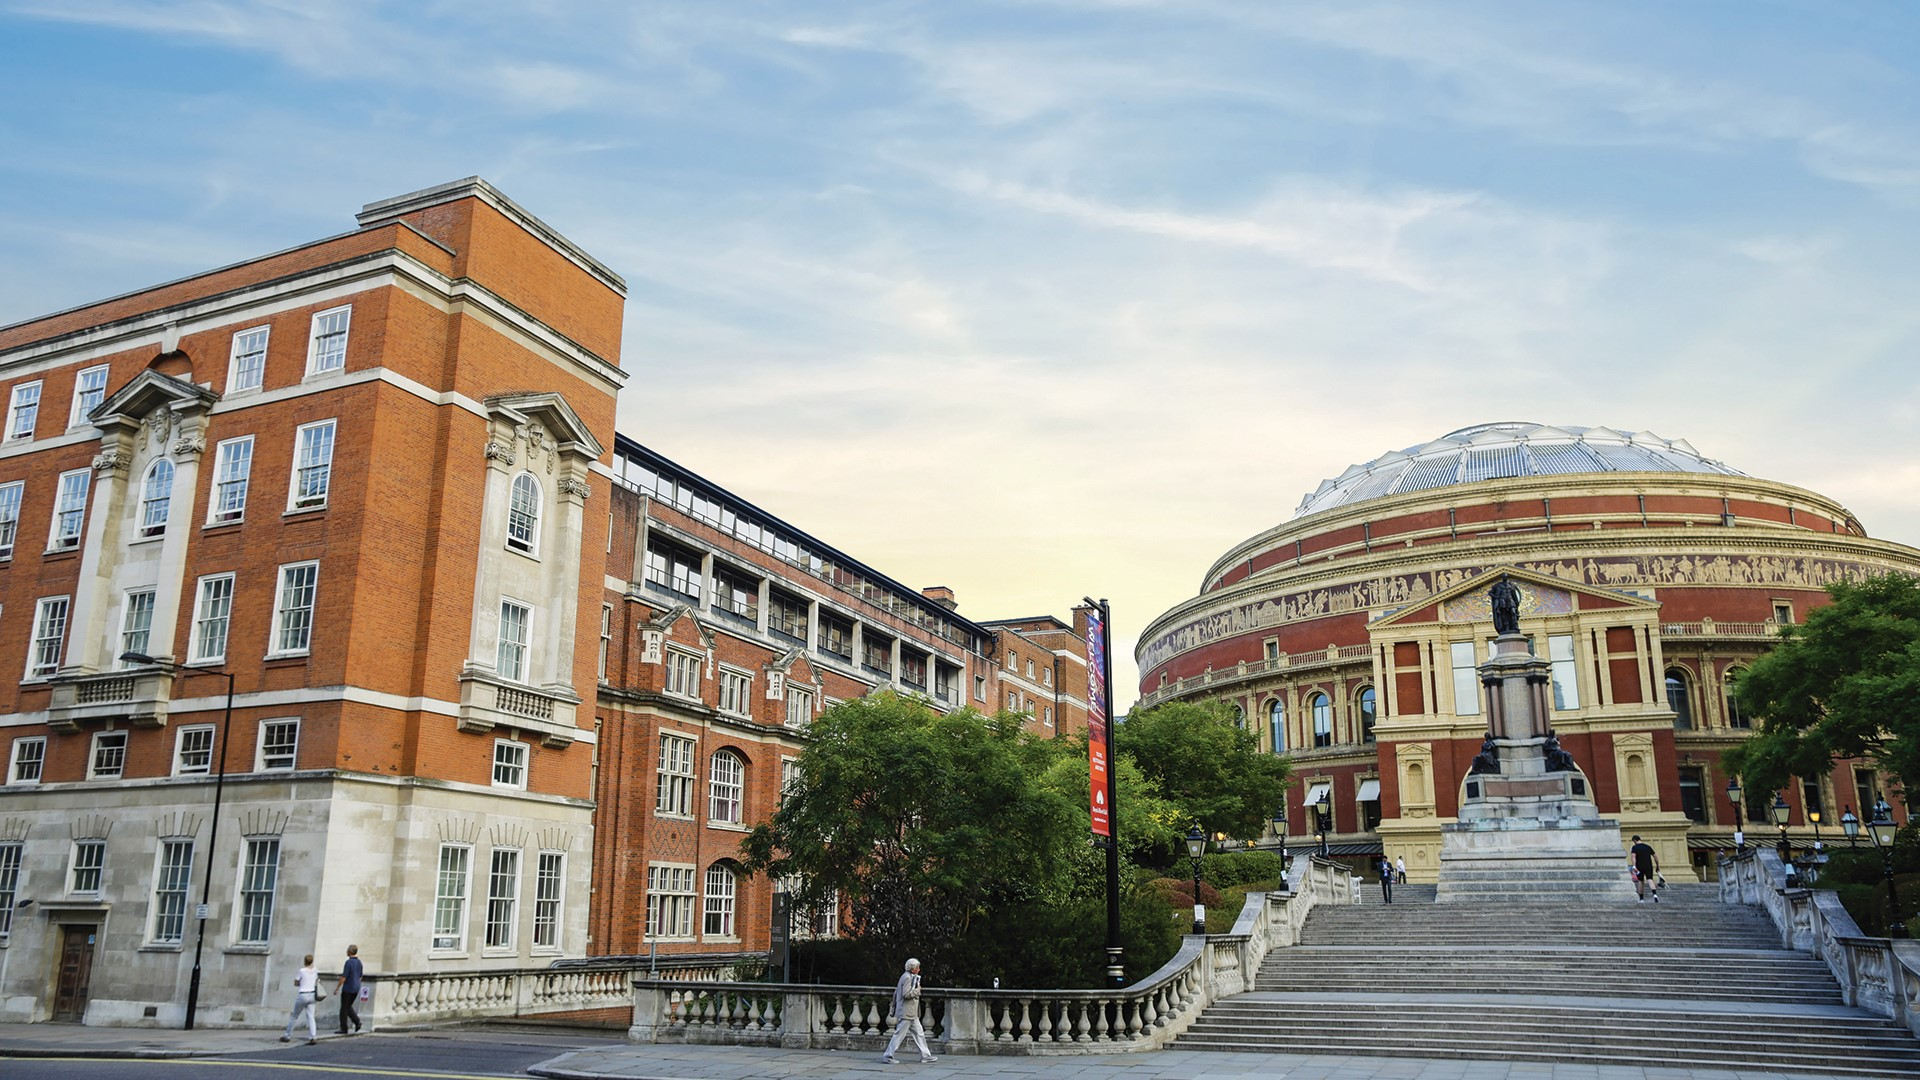 Imperial College's red-brick accommodation near London's Royal Albert Hall.